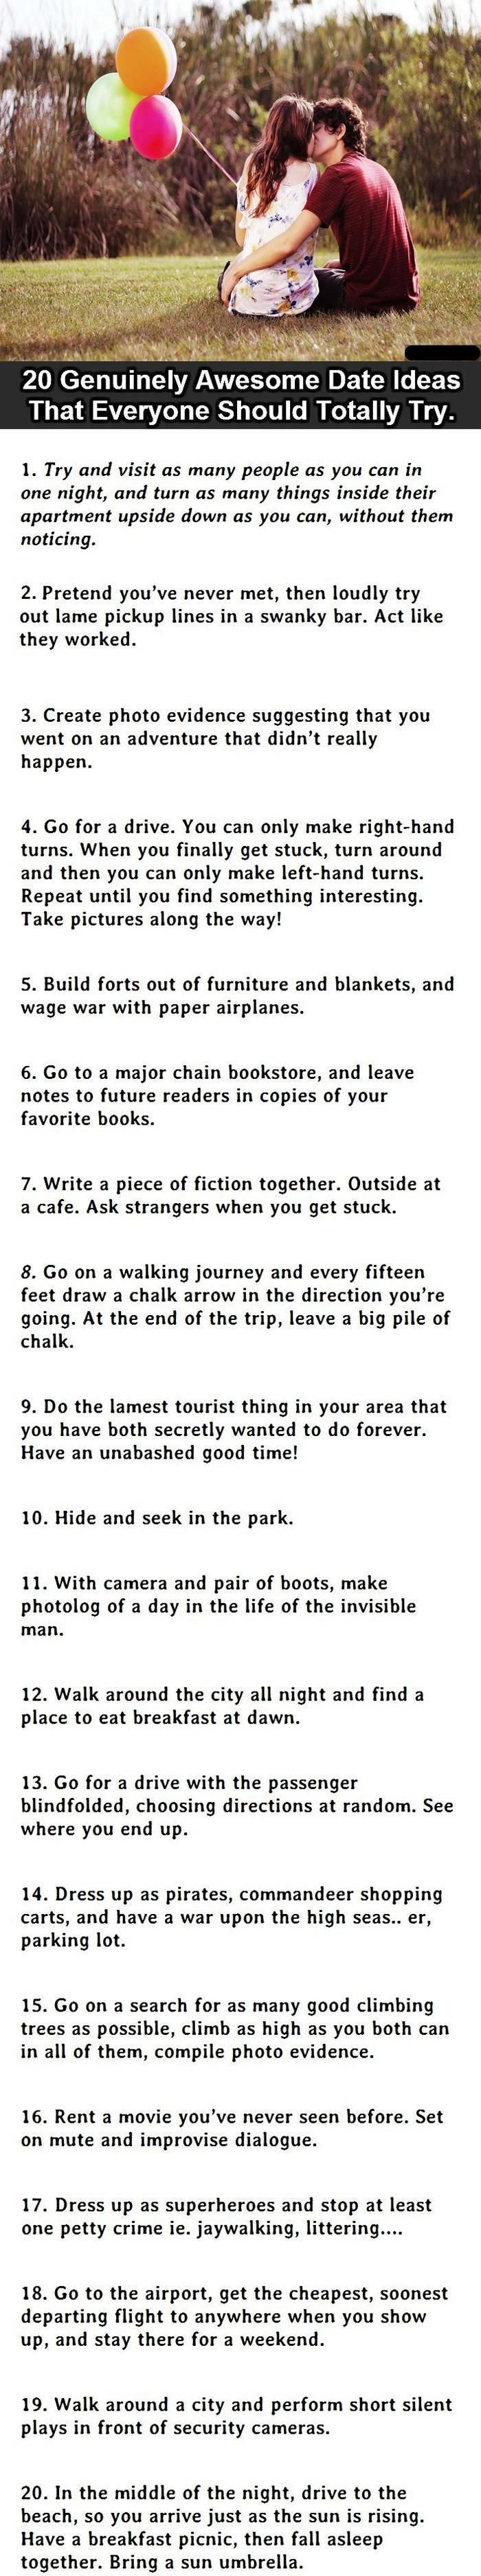 Perfect dates. If your significant other agrees to any of these. Keeper.